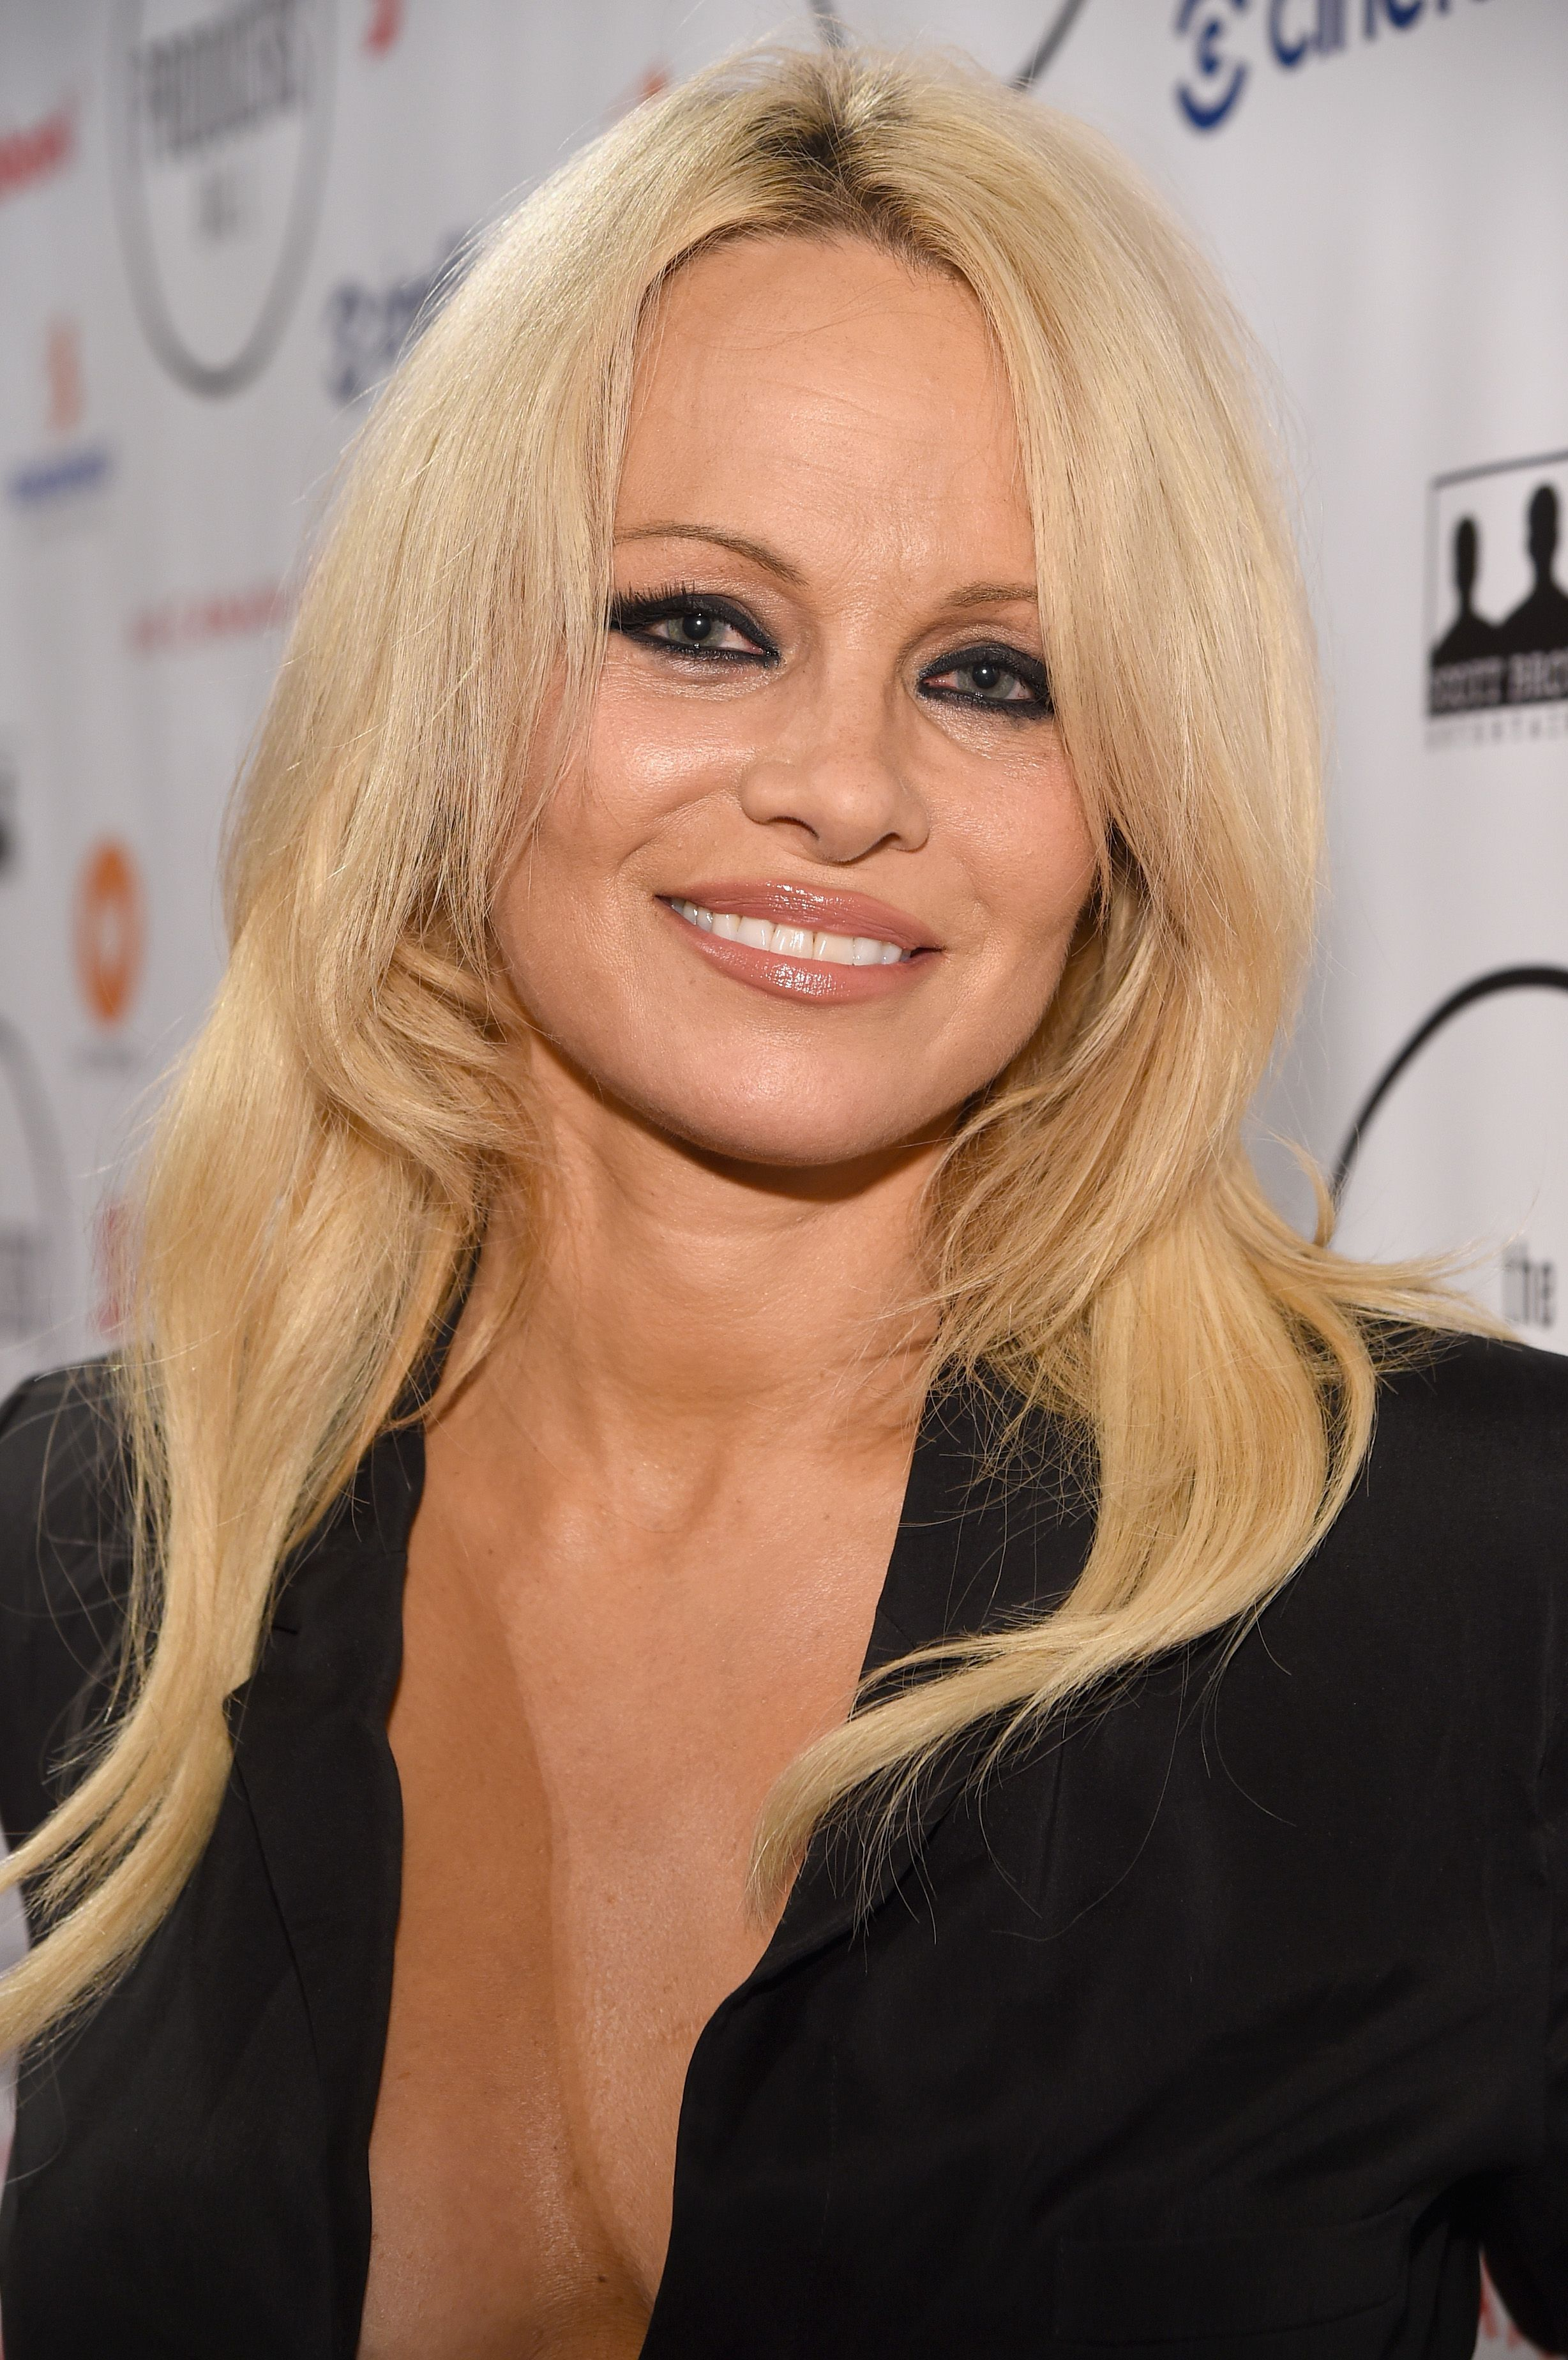 Actress Pamela Anderson at the 5th Annual Producers Ball for the 2015 Toronto International Film Festival at Royal Ontario Museum on September 11, 2015. | Photo: Getty Images